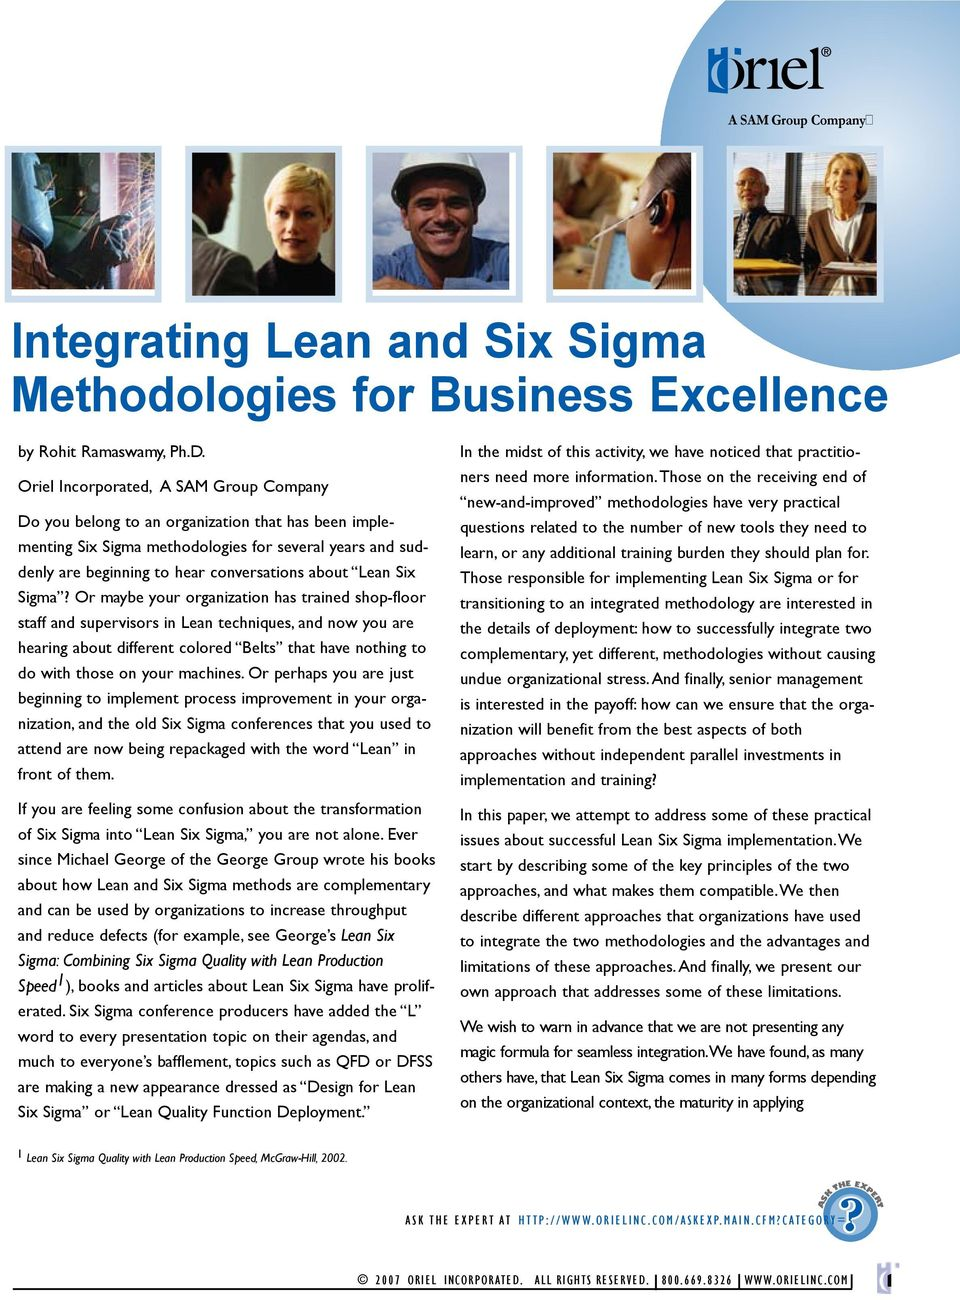 Lean Six Sigma Or maybe your organization has trained shop-floor staff and supervisors in Lean techniques, and now you are hearing about different colored Belts that have nothing to do with those on